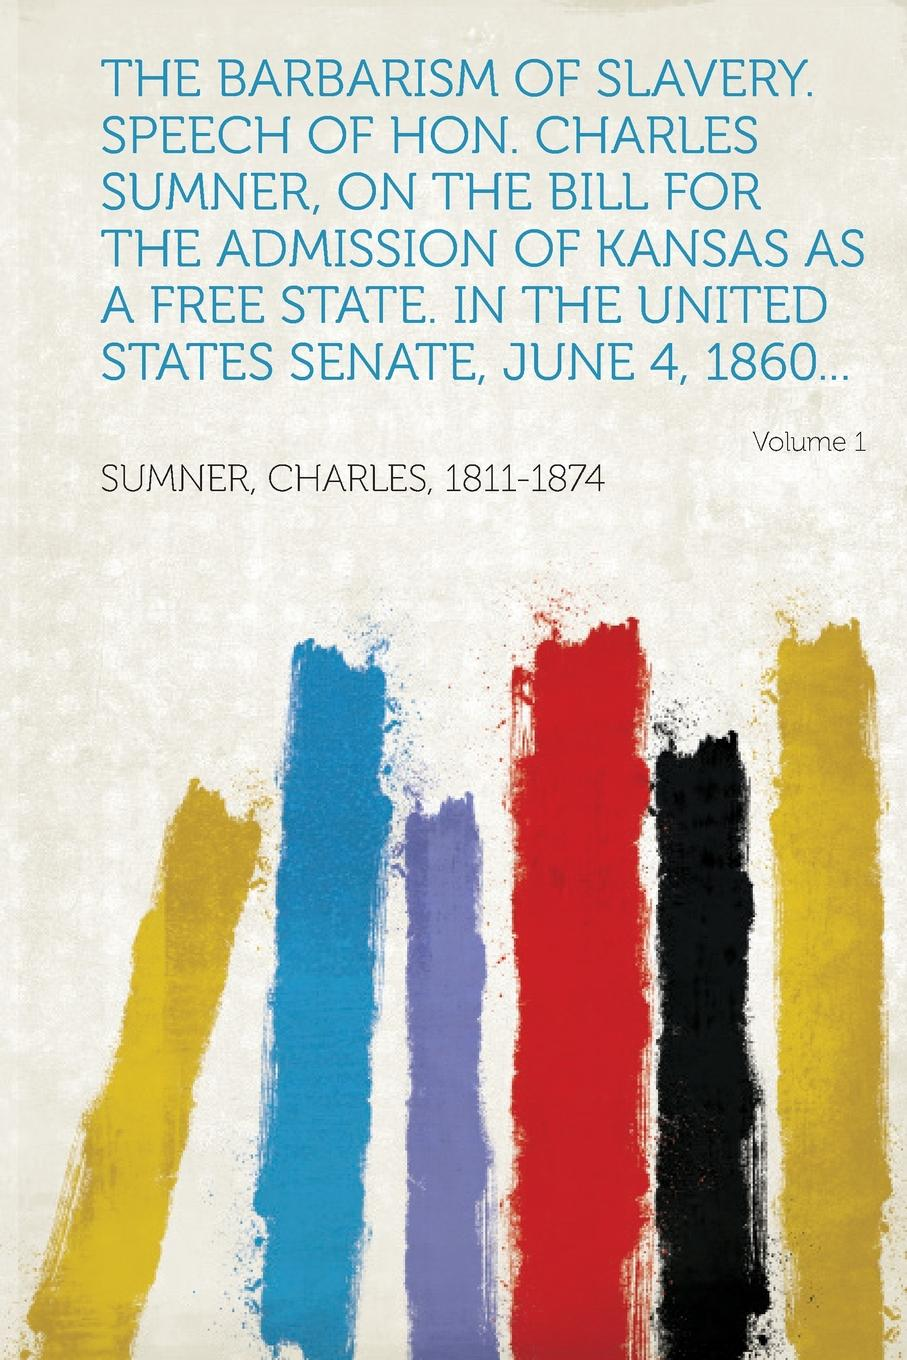 The Barbarism of Slavery. Speech of Hon. Charles Sumner, on the Bill for the Admission of Kansas as a Free State. in the United States Senate, June 4, charles sumner white slavery in the barbary states